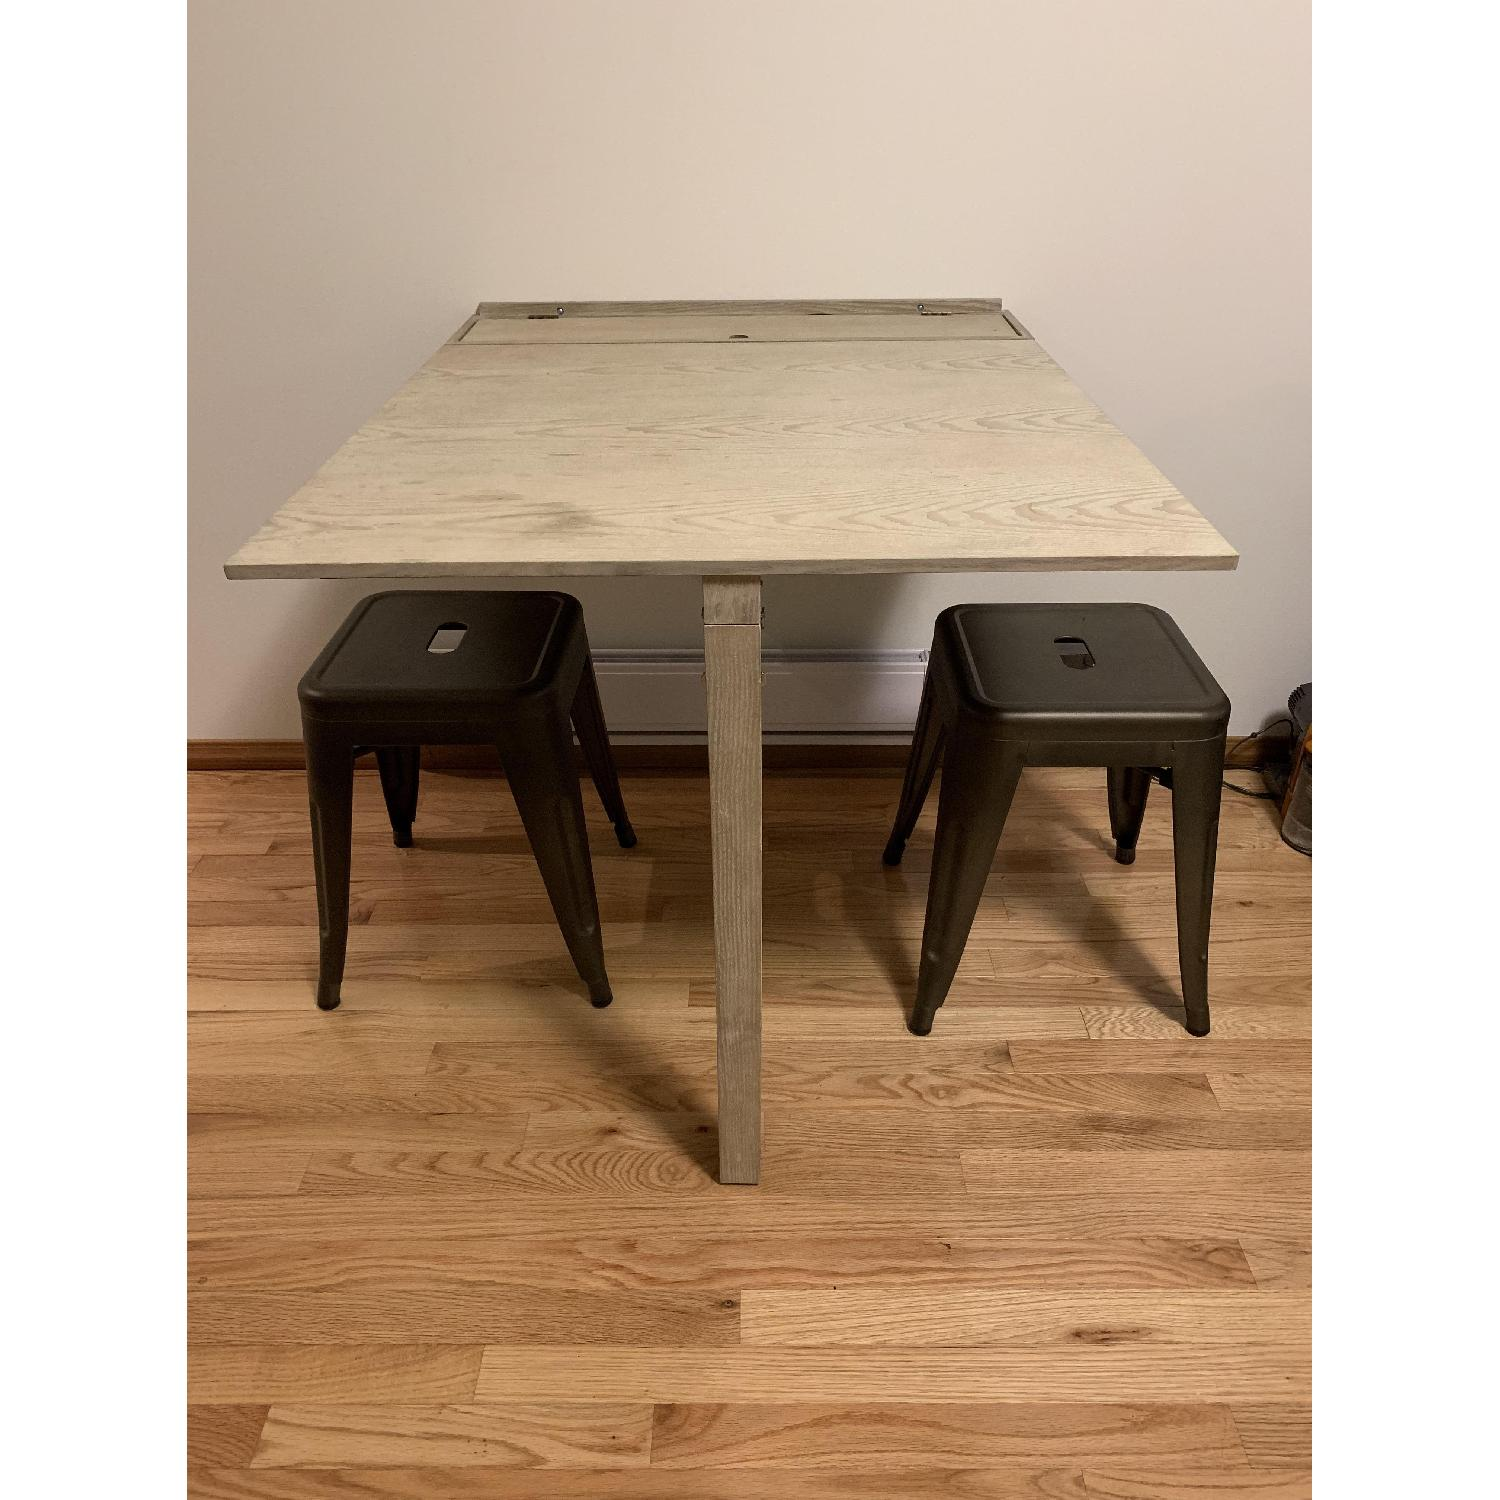 Pottery Barn Desk-3